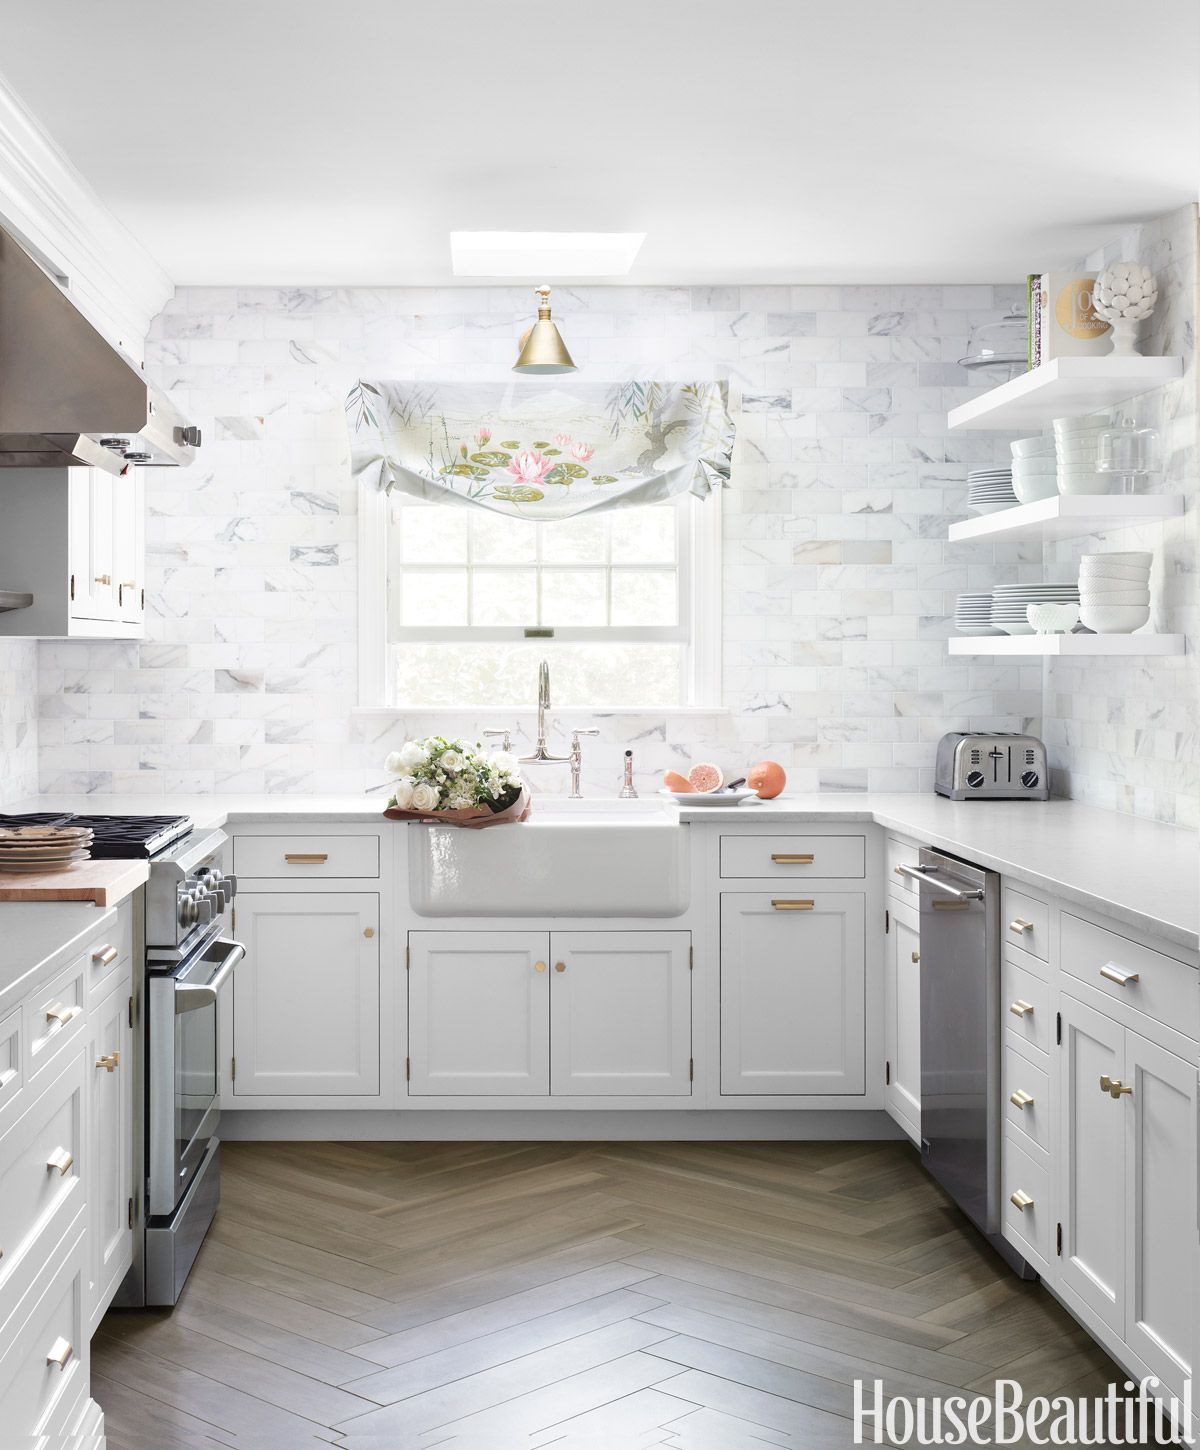 Best 25+ White kitchen backsplash ideas on Pinterest | Glass backsplash  kitchen, Backsplash kitchen white cabinets and Grey backsplash